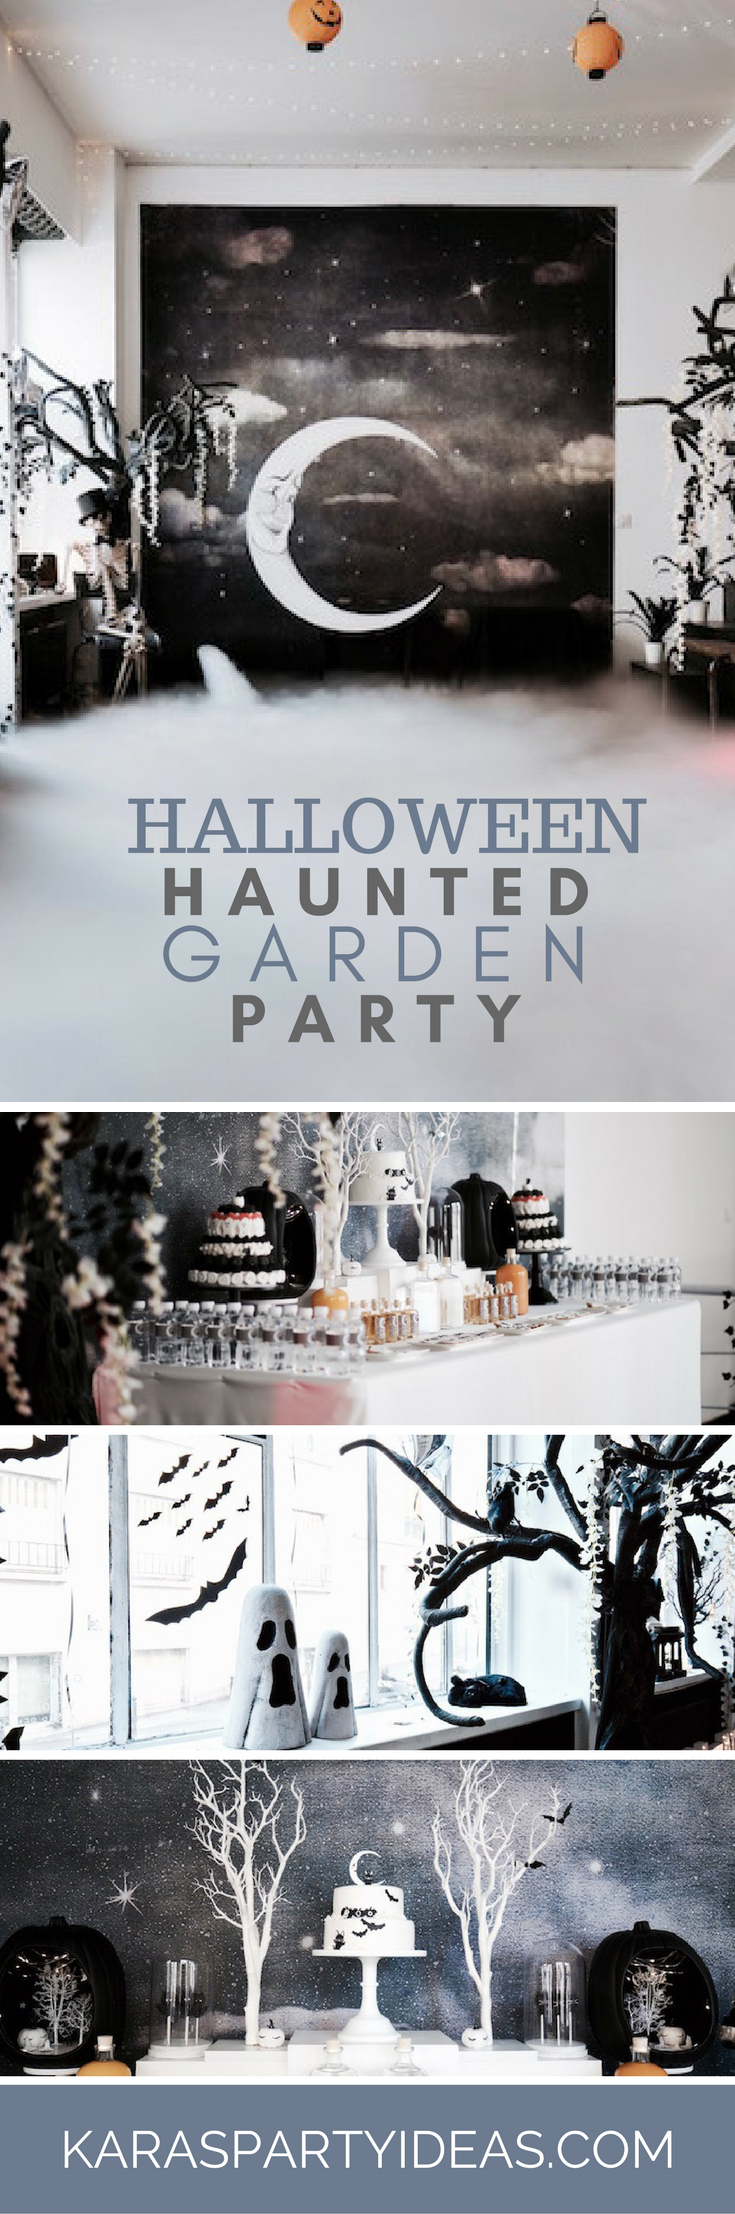 Halloween Haunted Garden Party via Kara's Party Ideas - KarasPartyIdeas.com